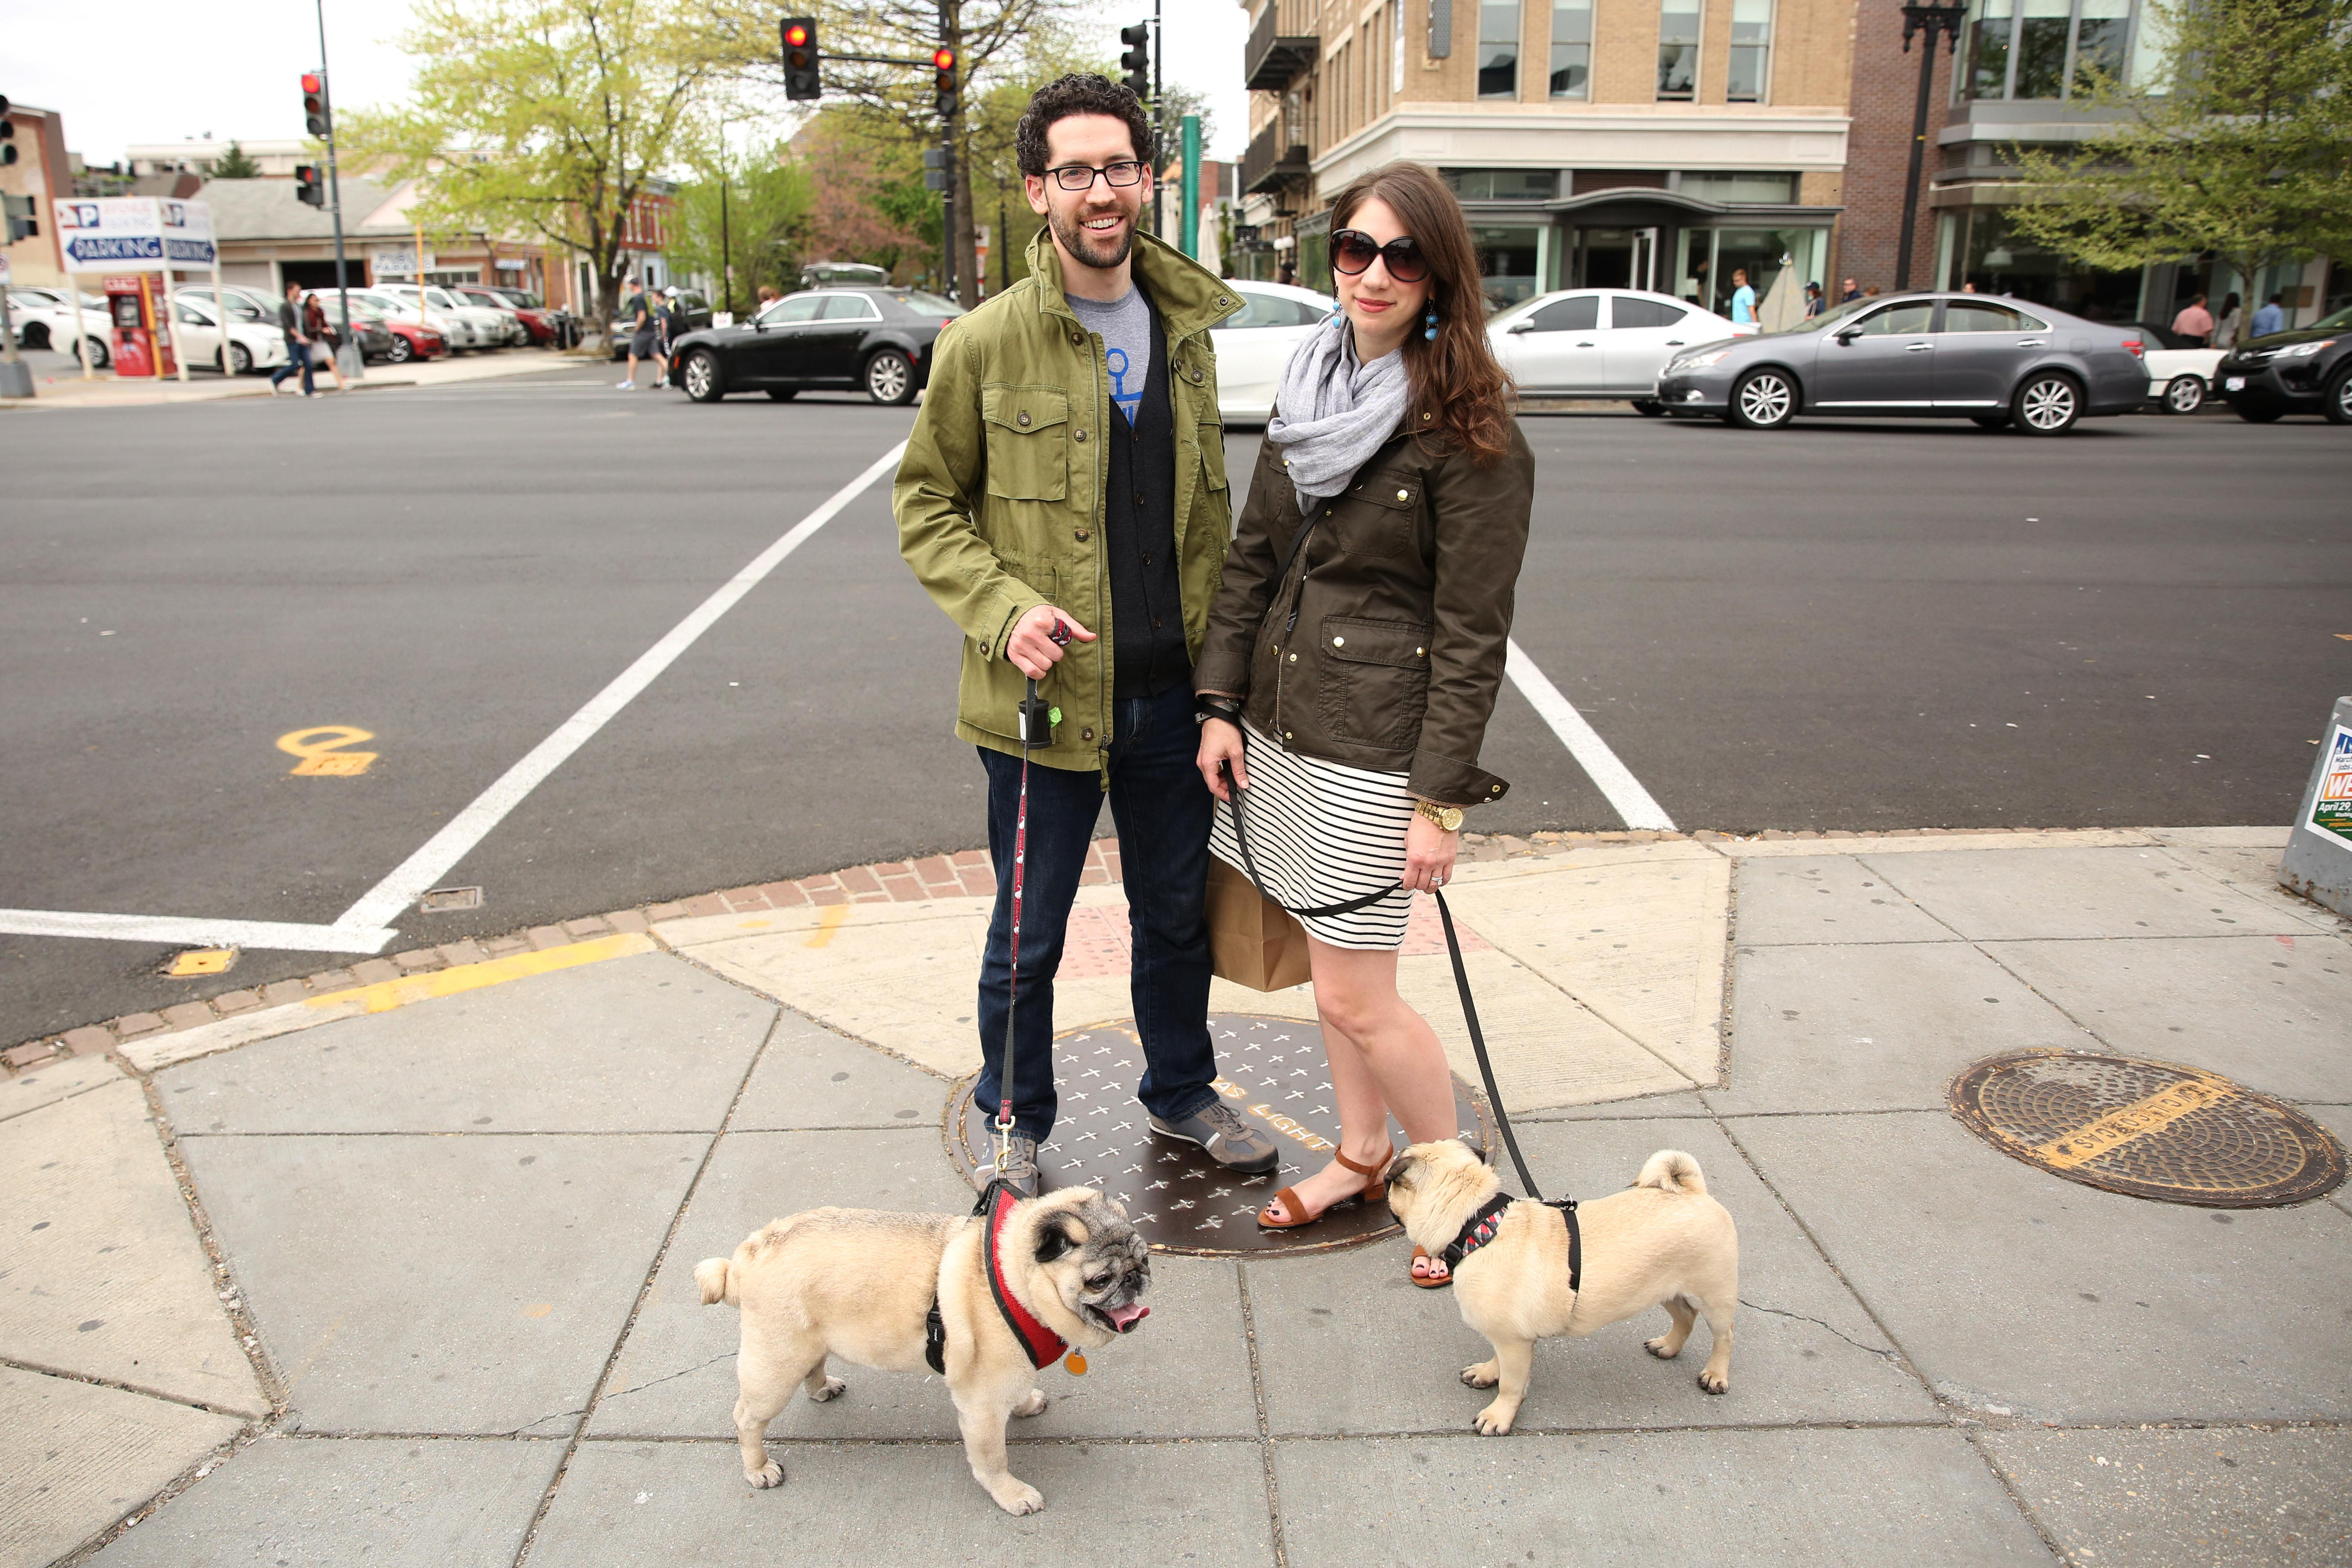 A matching spouse and adorable pugs are also great for completing any outfit. (Amanda Andrade-Rhoades/DC Refined)